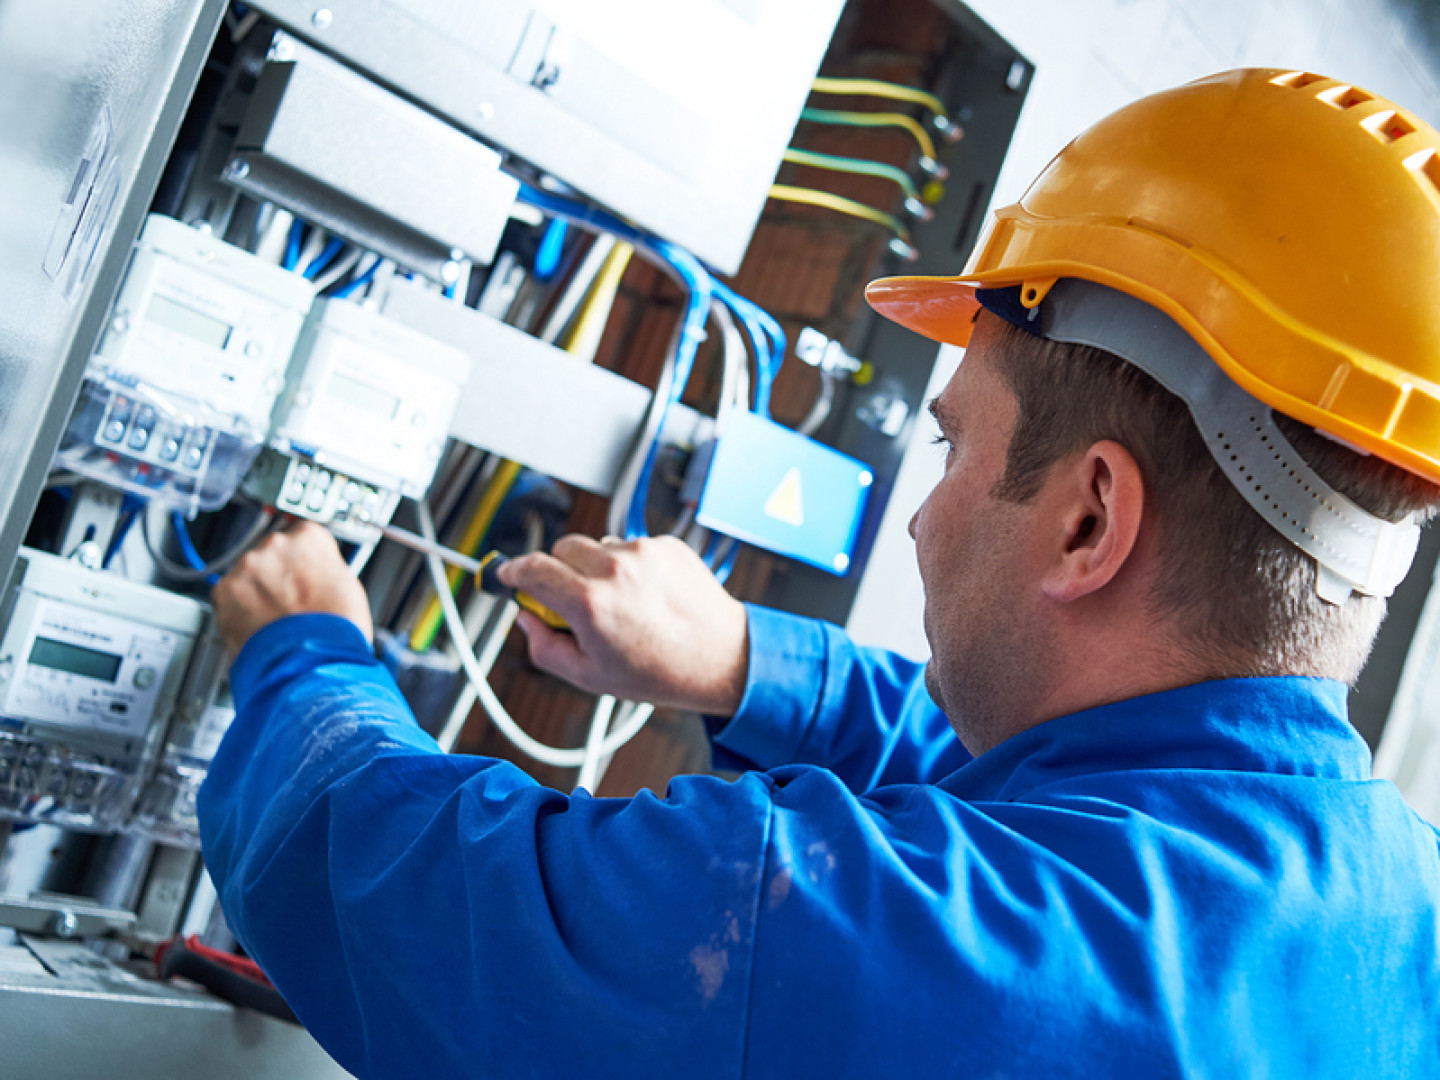 Alb Electric Corp. will take care of all your electrical needs